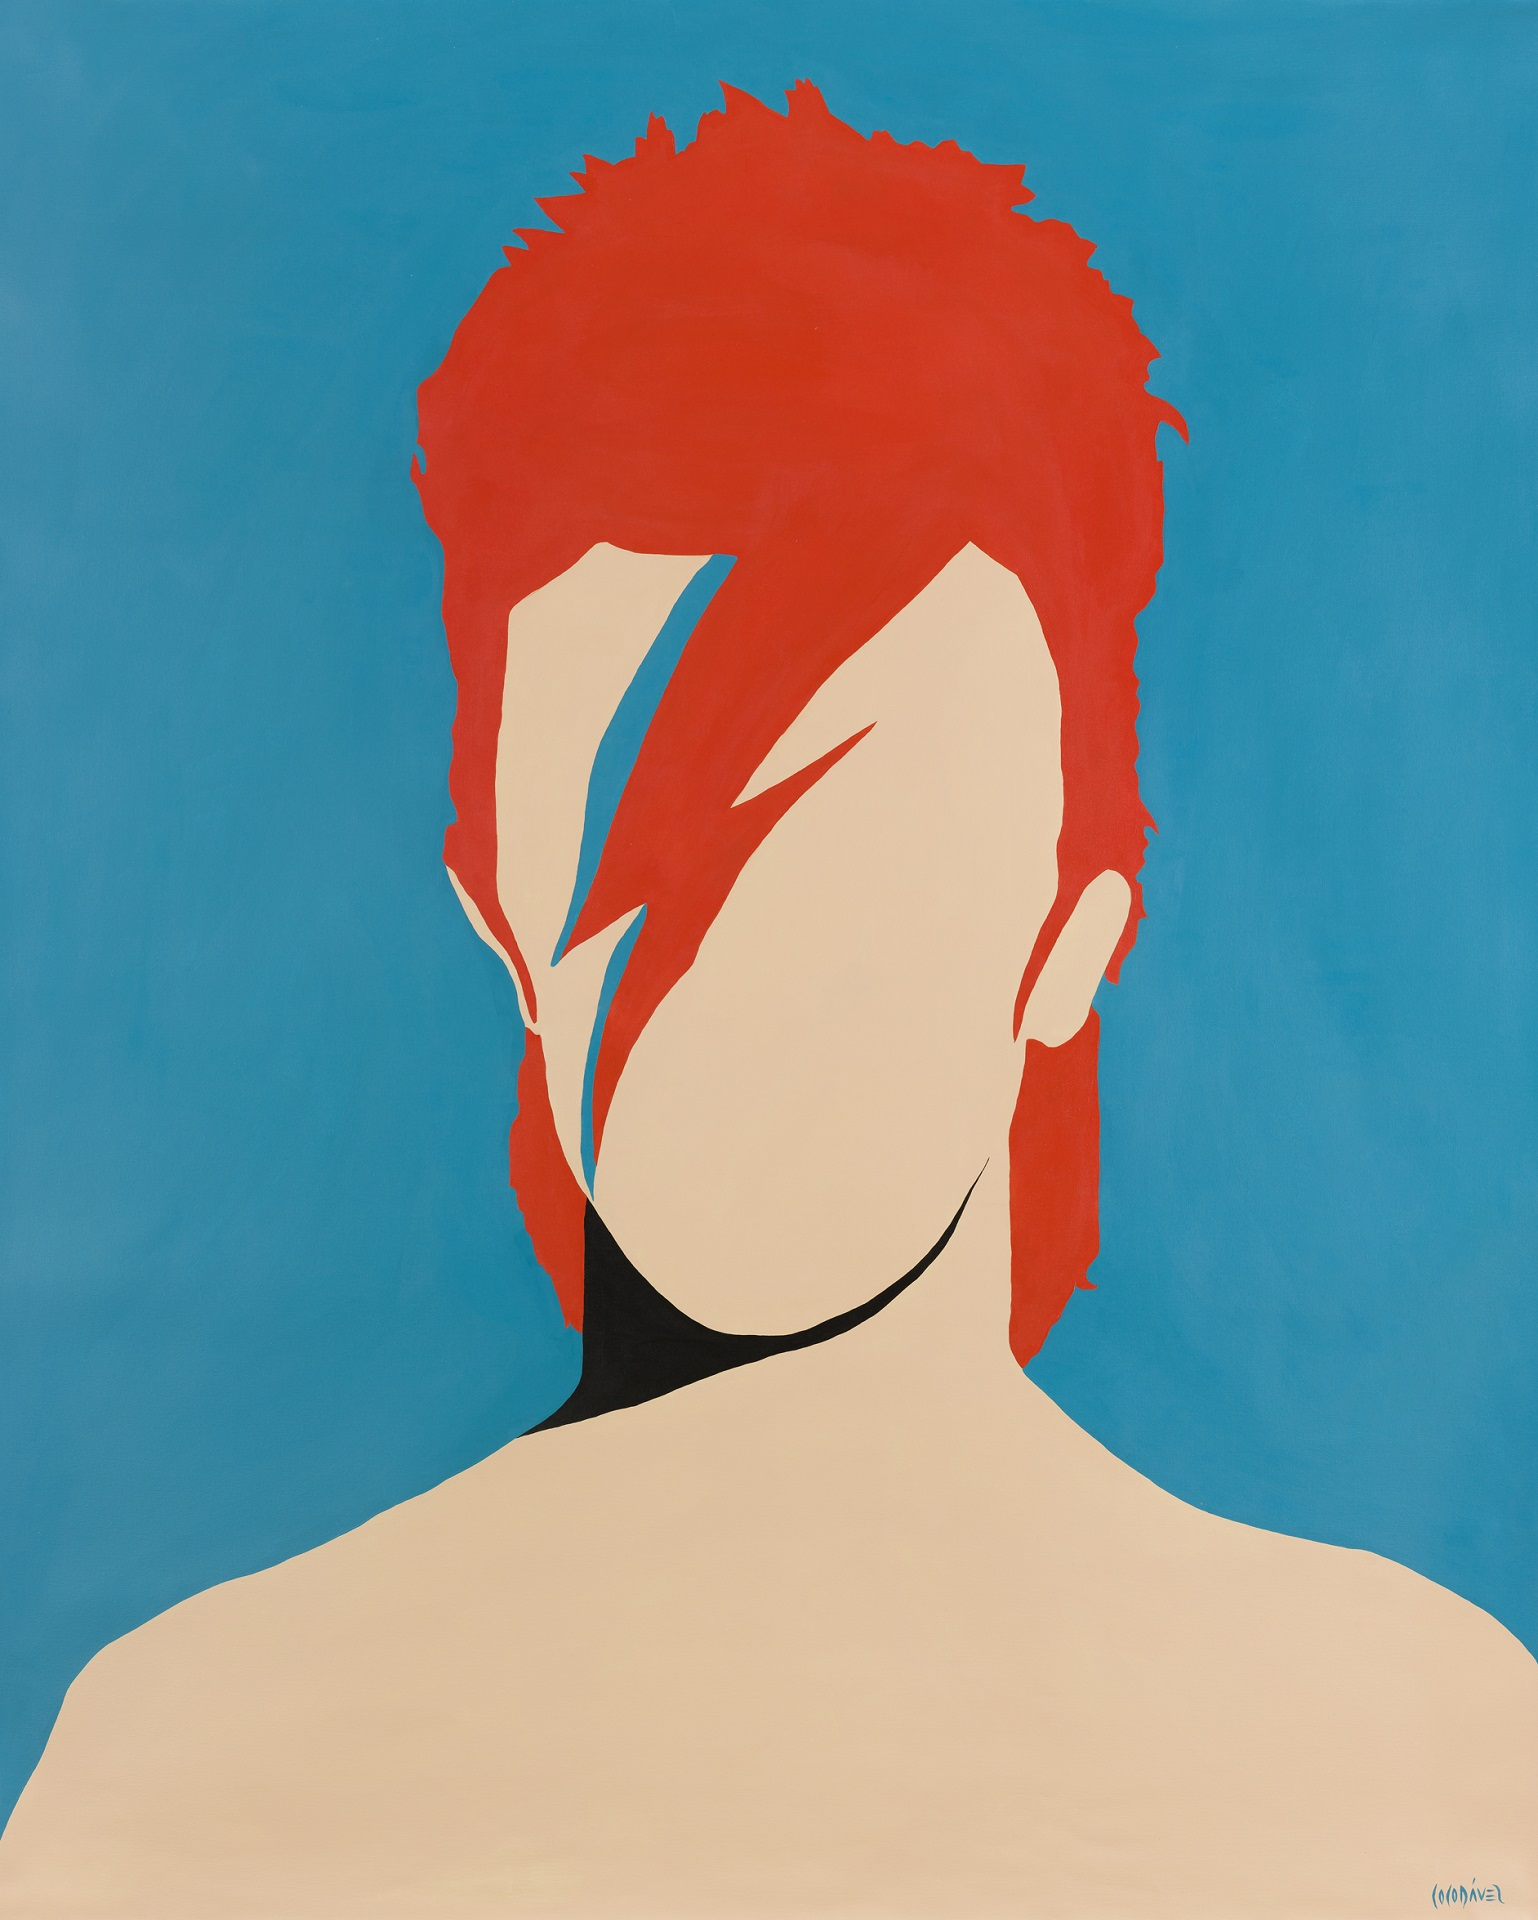 David Bowie by Coco Dávez